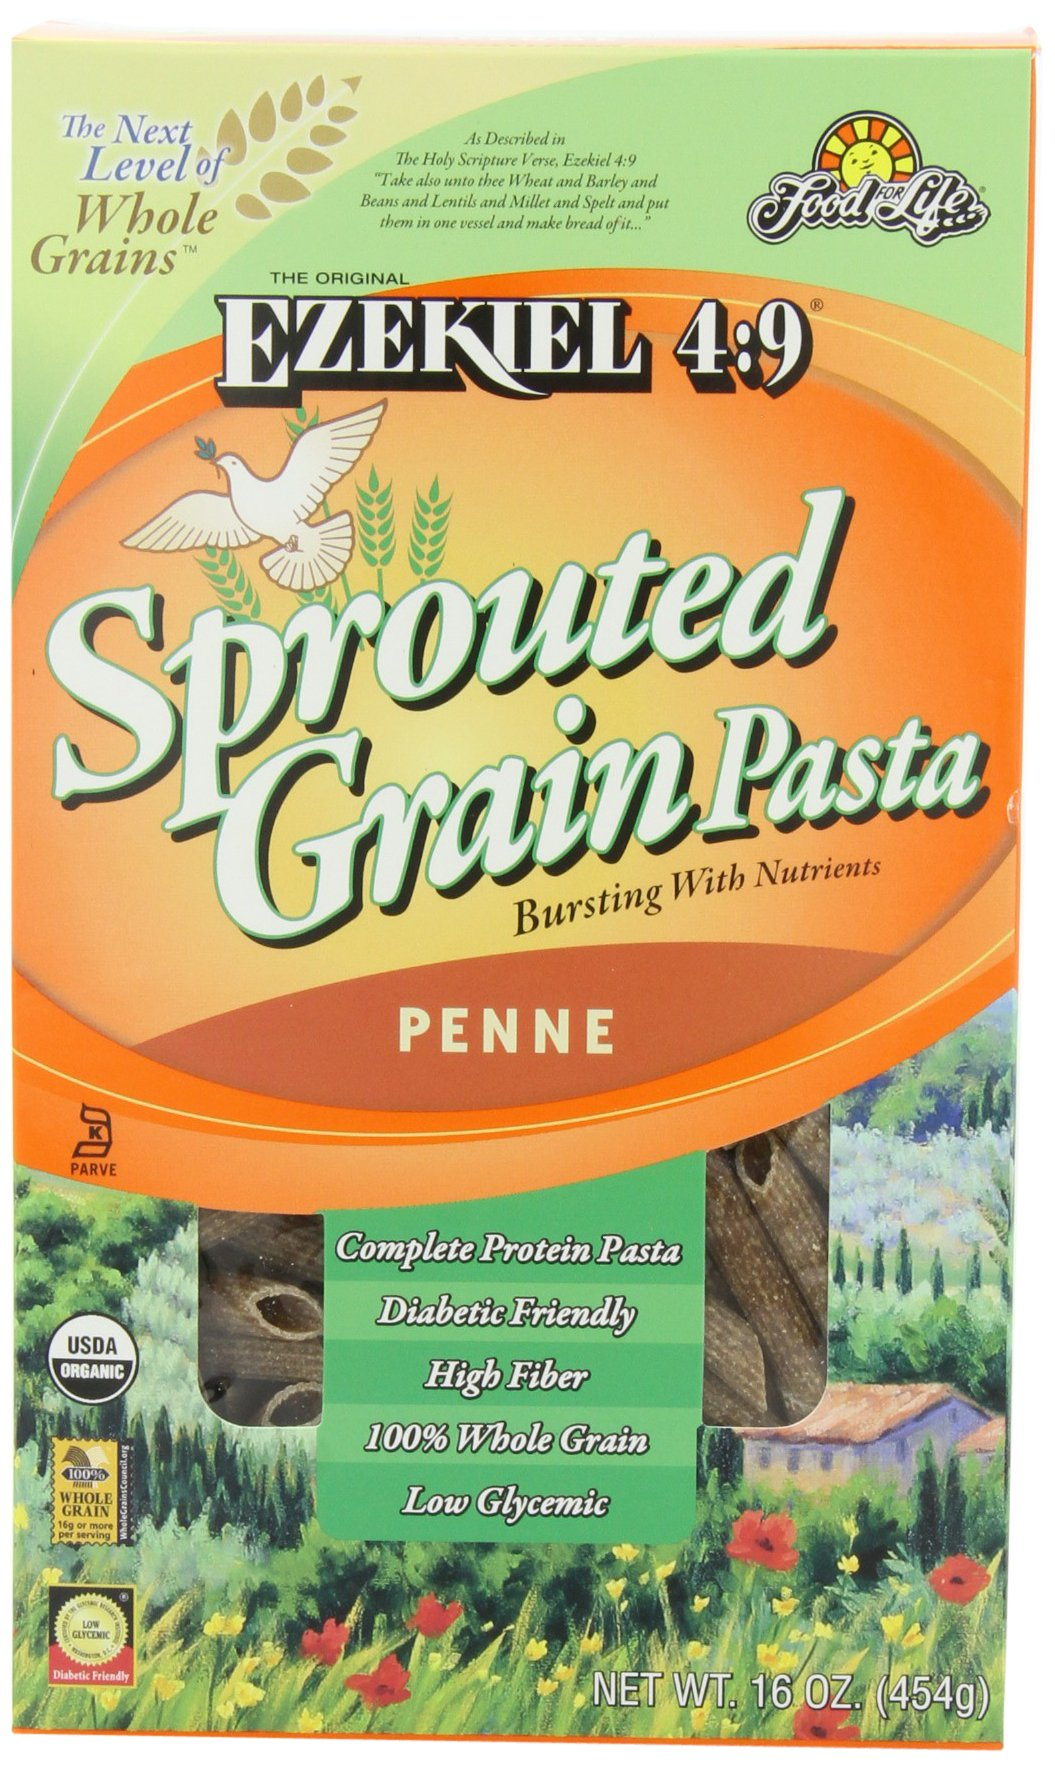 Food For Life Ezekiel 4:9 Organic Sprouted Grain Pasta, Penne, 16-Ounce Boxes (Pack of 6)